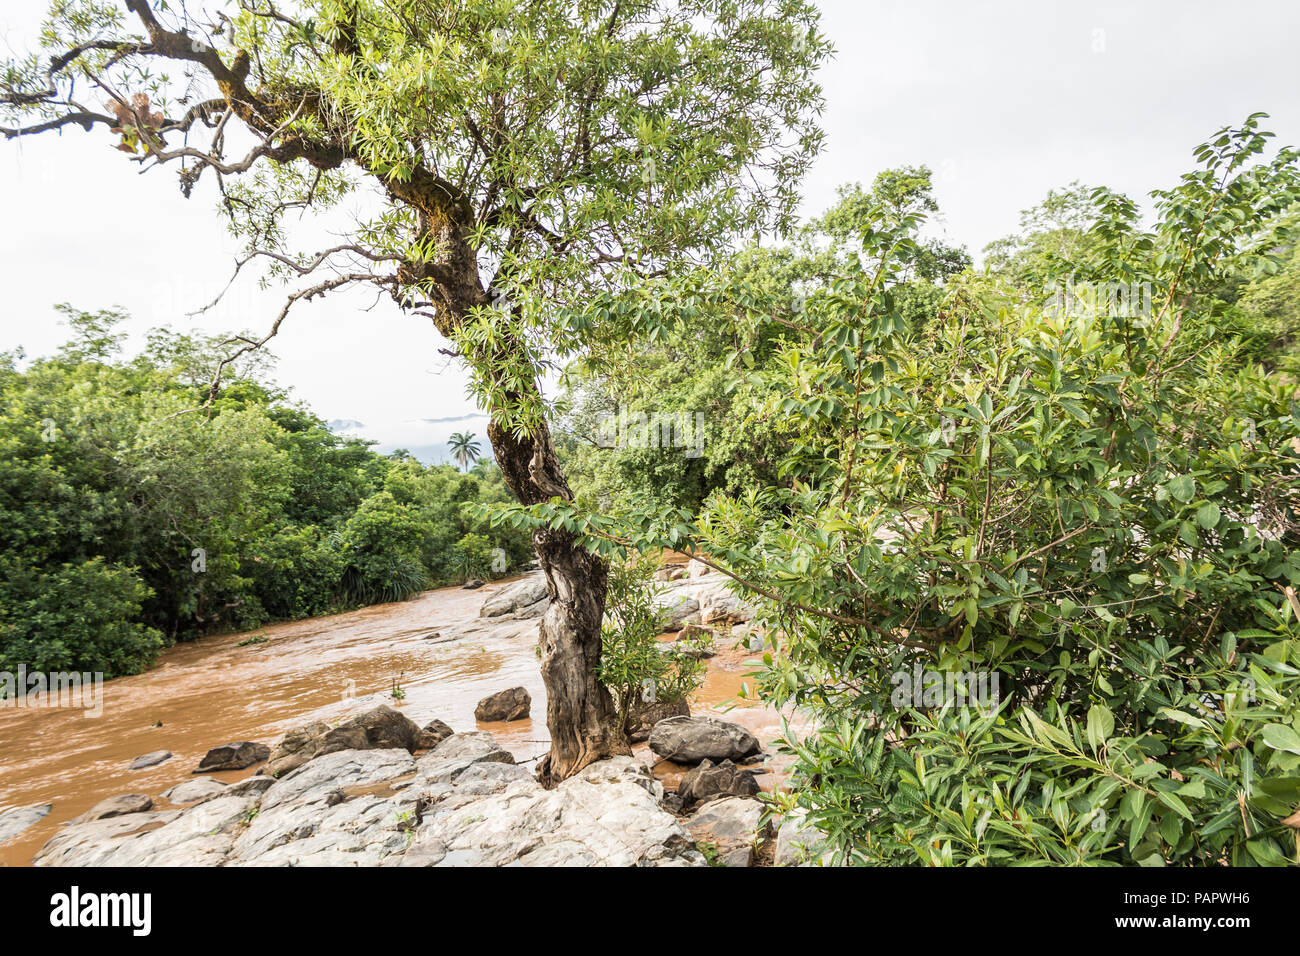 A remote fat flowing stream of water in the rainforest, surrounded by bushes and forest. - Stock Image